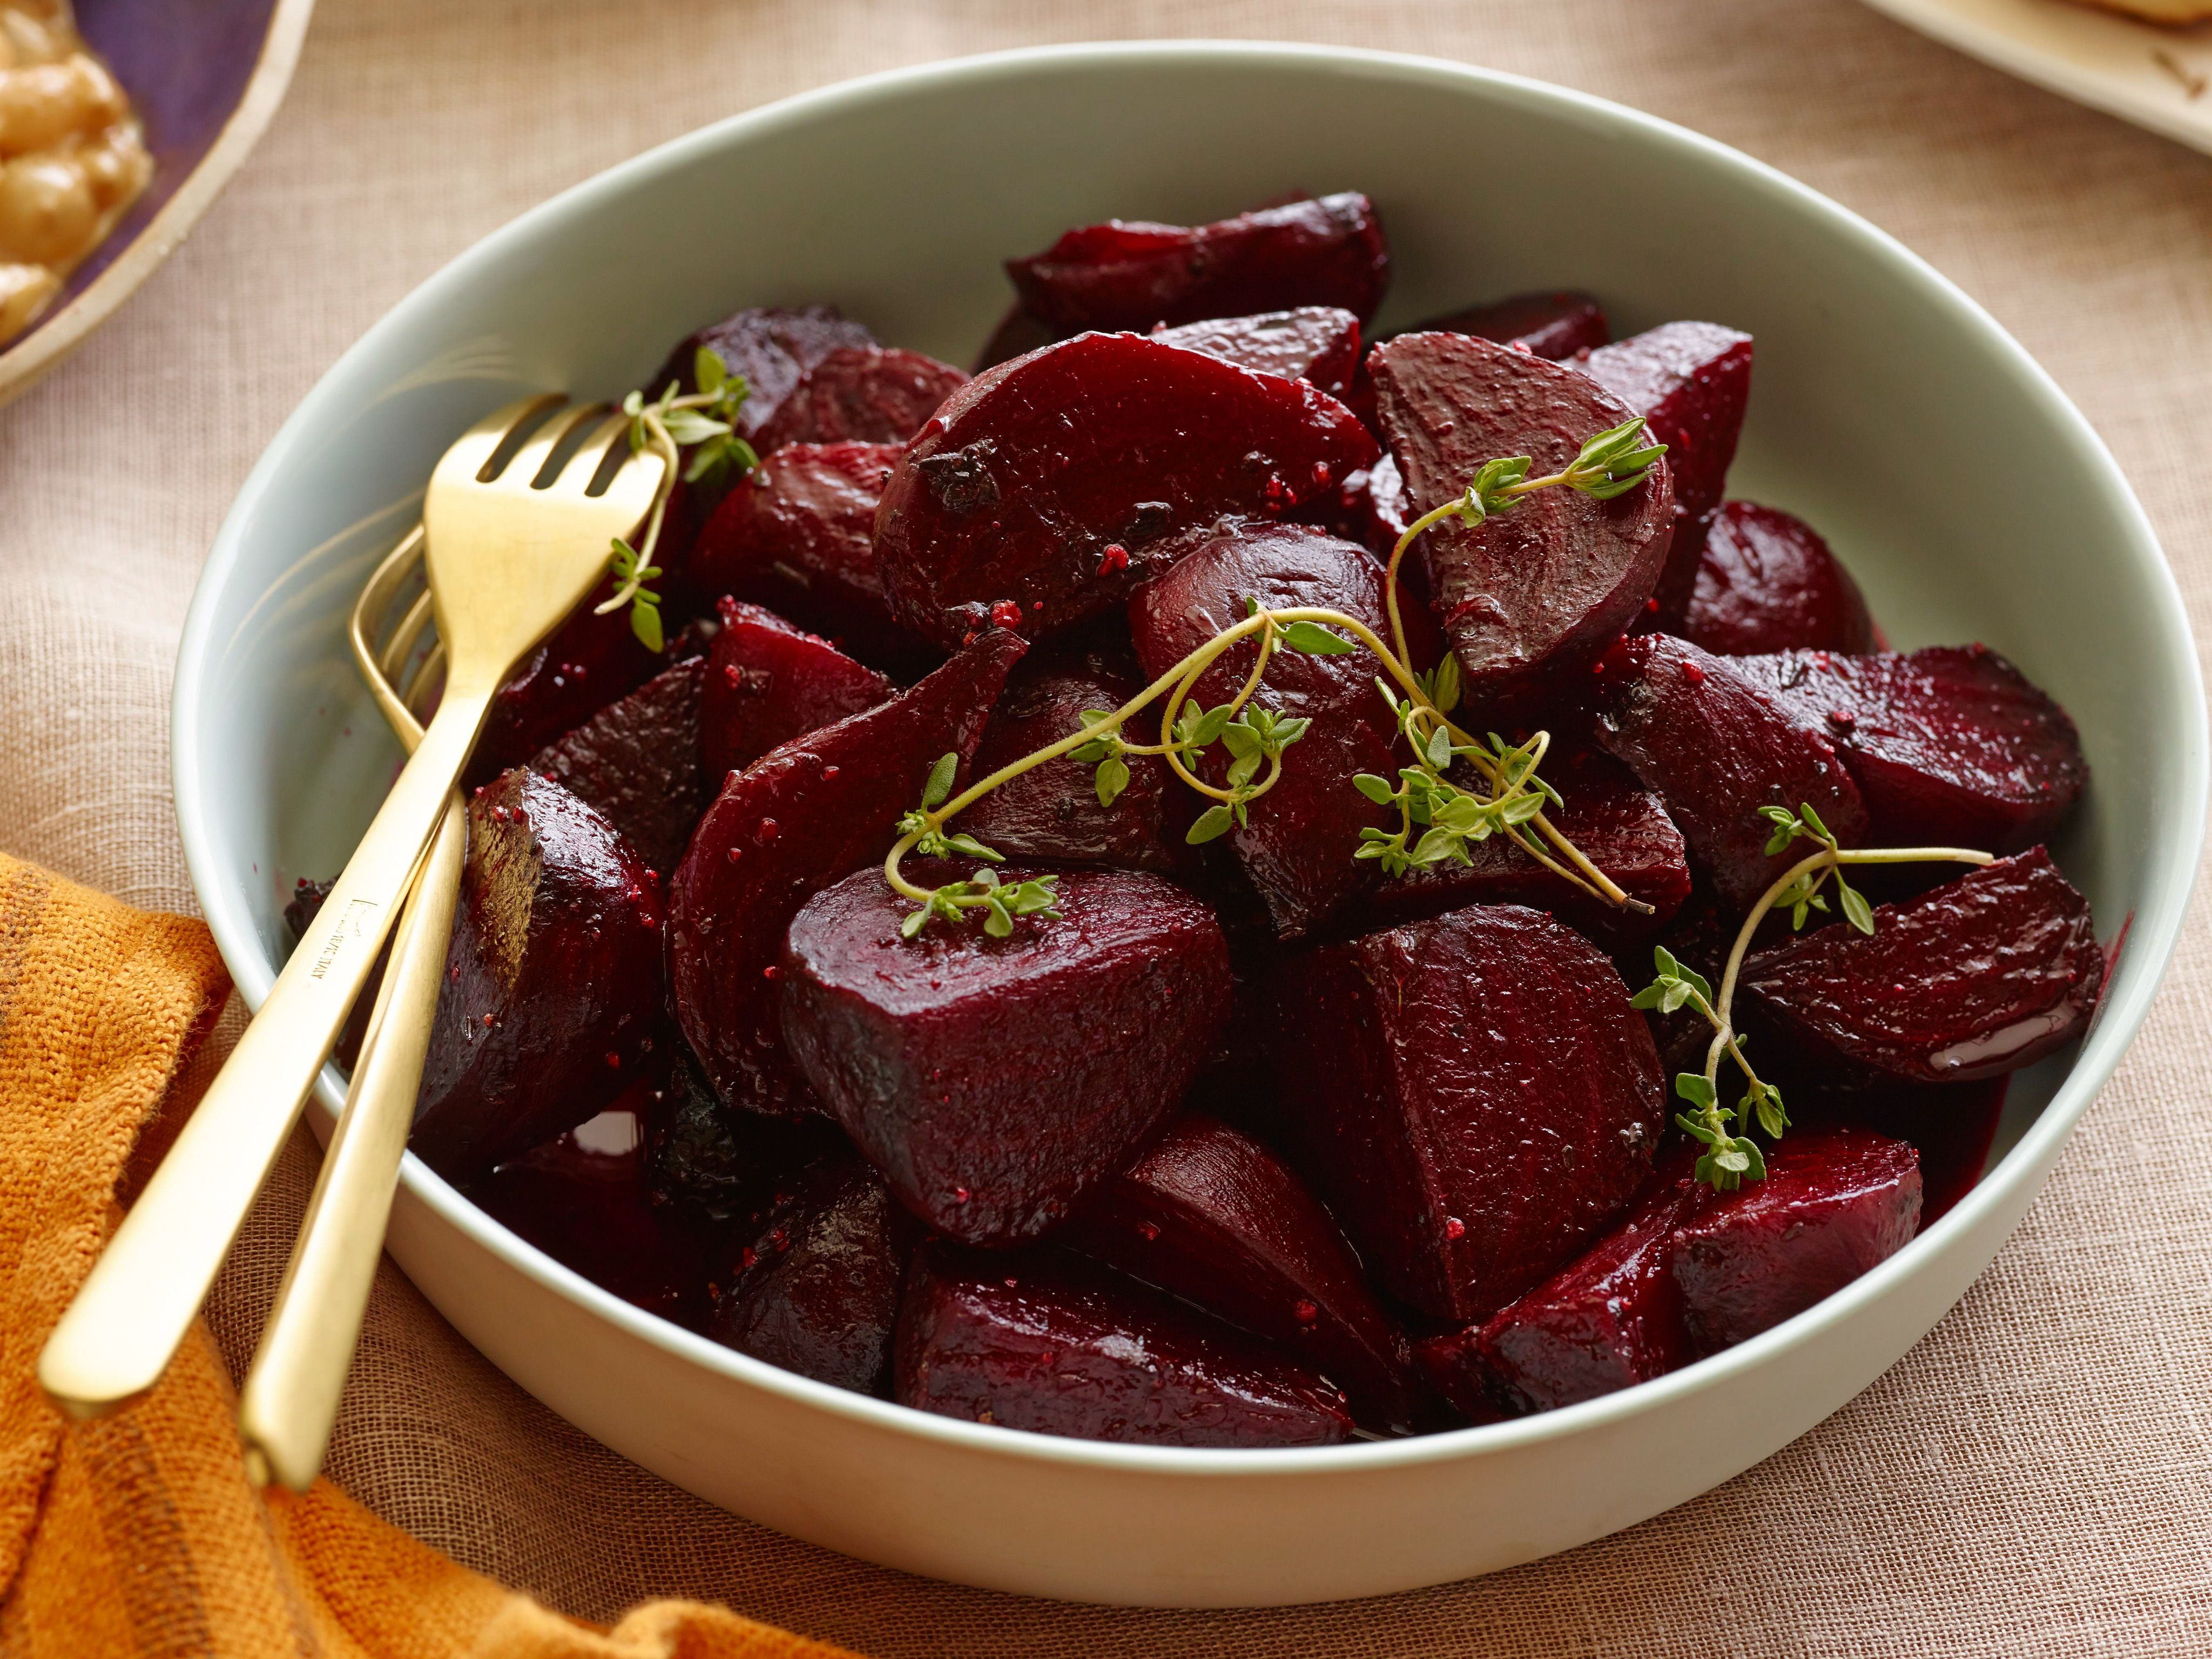 Ina Garten Recipes Roasted Beets Recipe Roasted Beets And Ina Garten